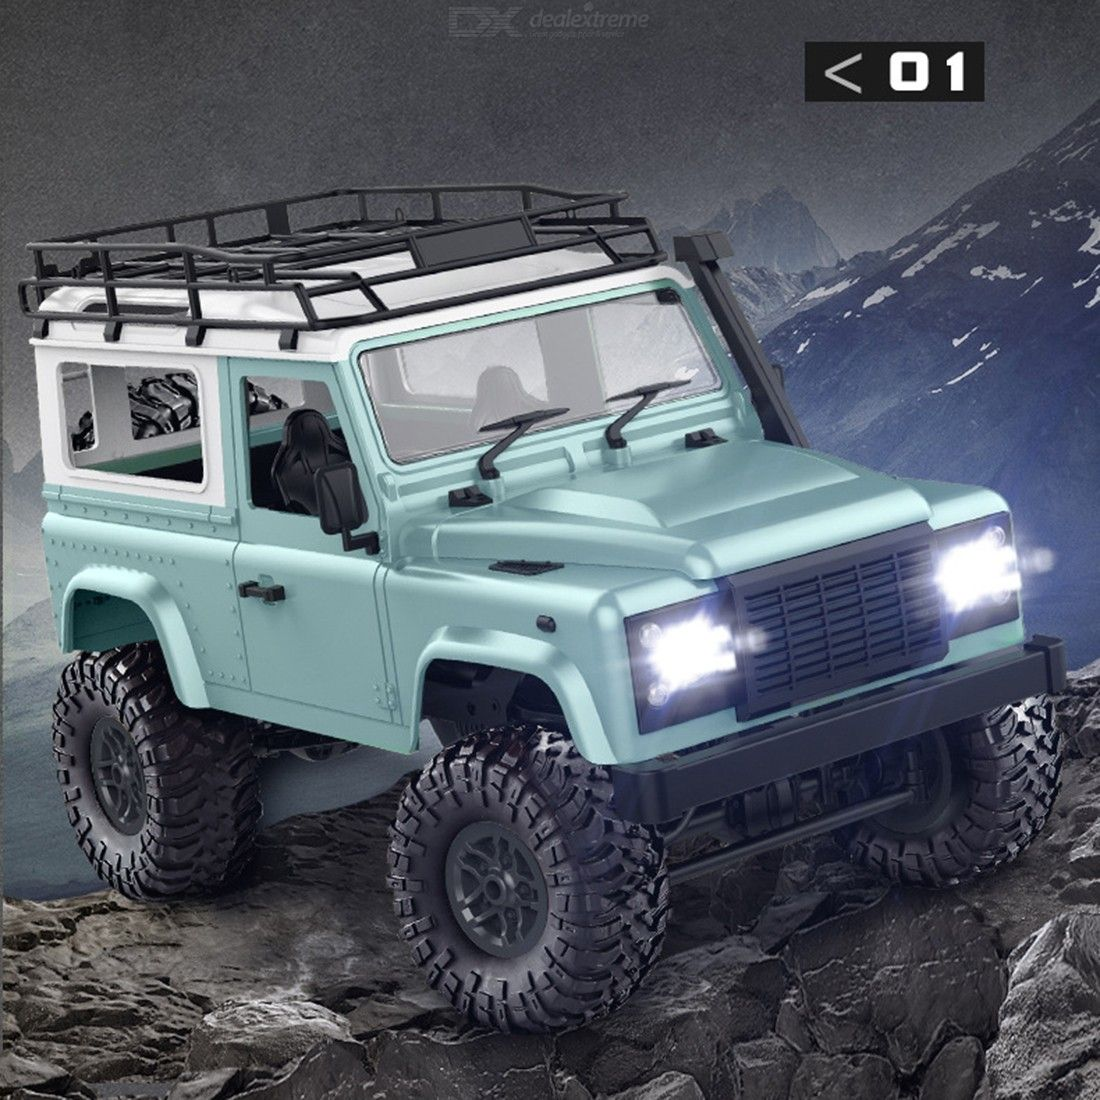 MN90 1:12 4WD 2.4G RC Climbing Car RC D90 RC Off-road Model Vehicle Remote Control Toy